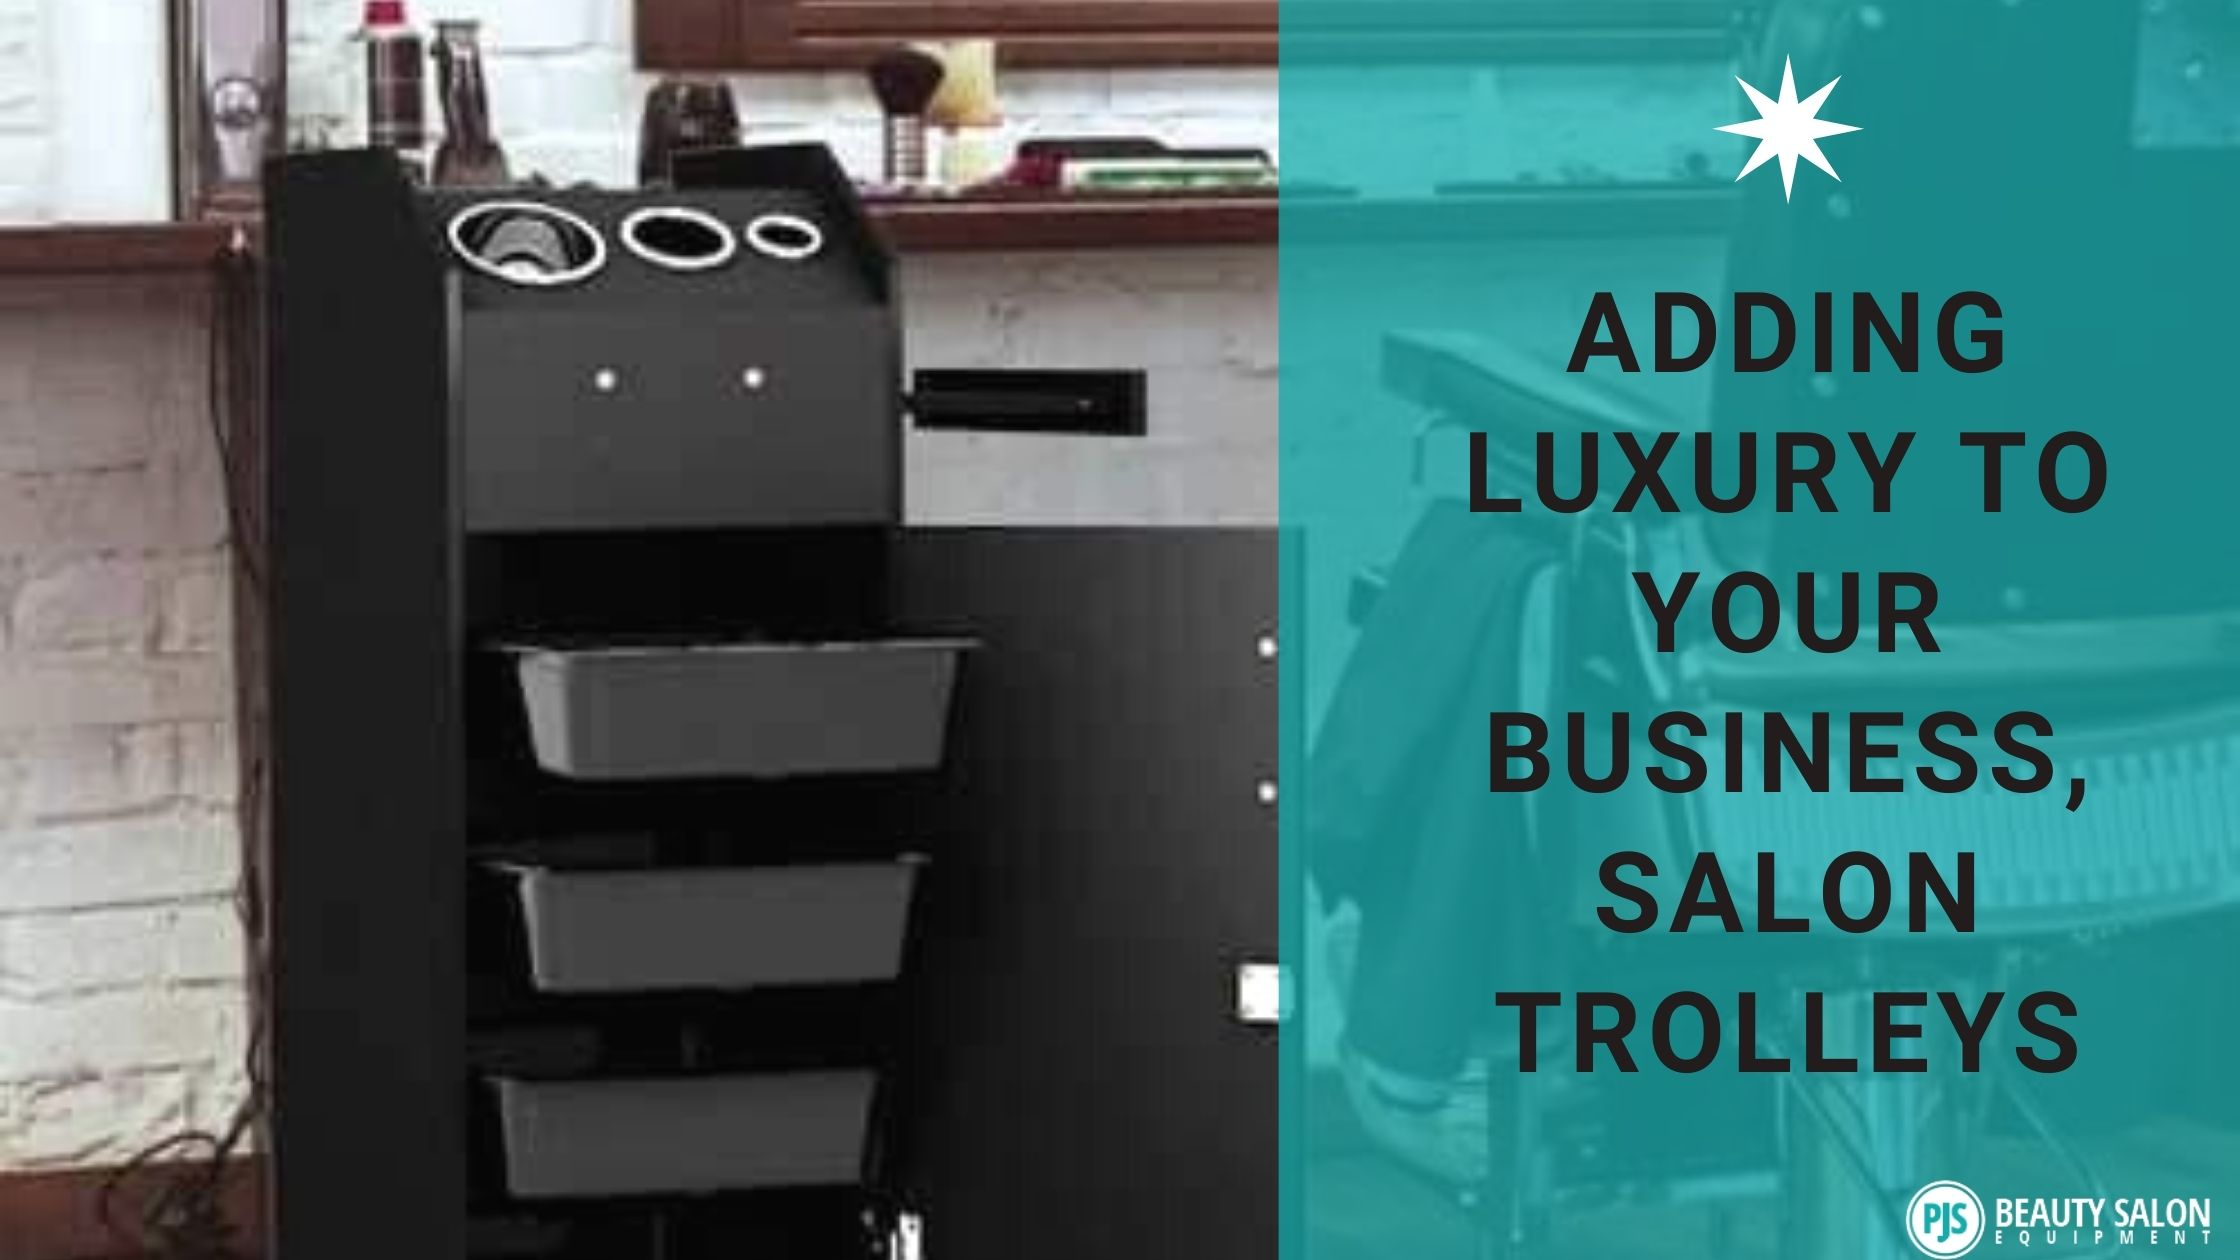 Adding Luxury To Your Business, Salon Trolleys